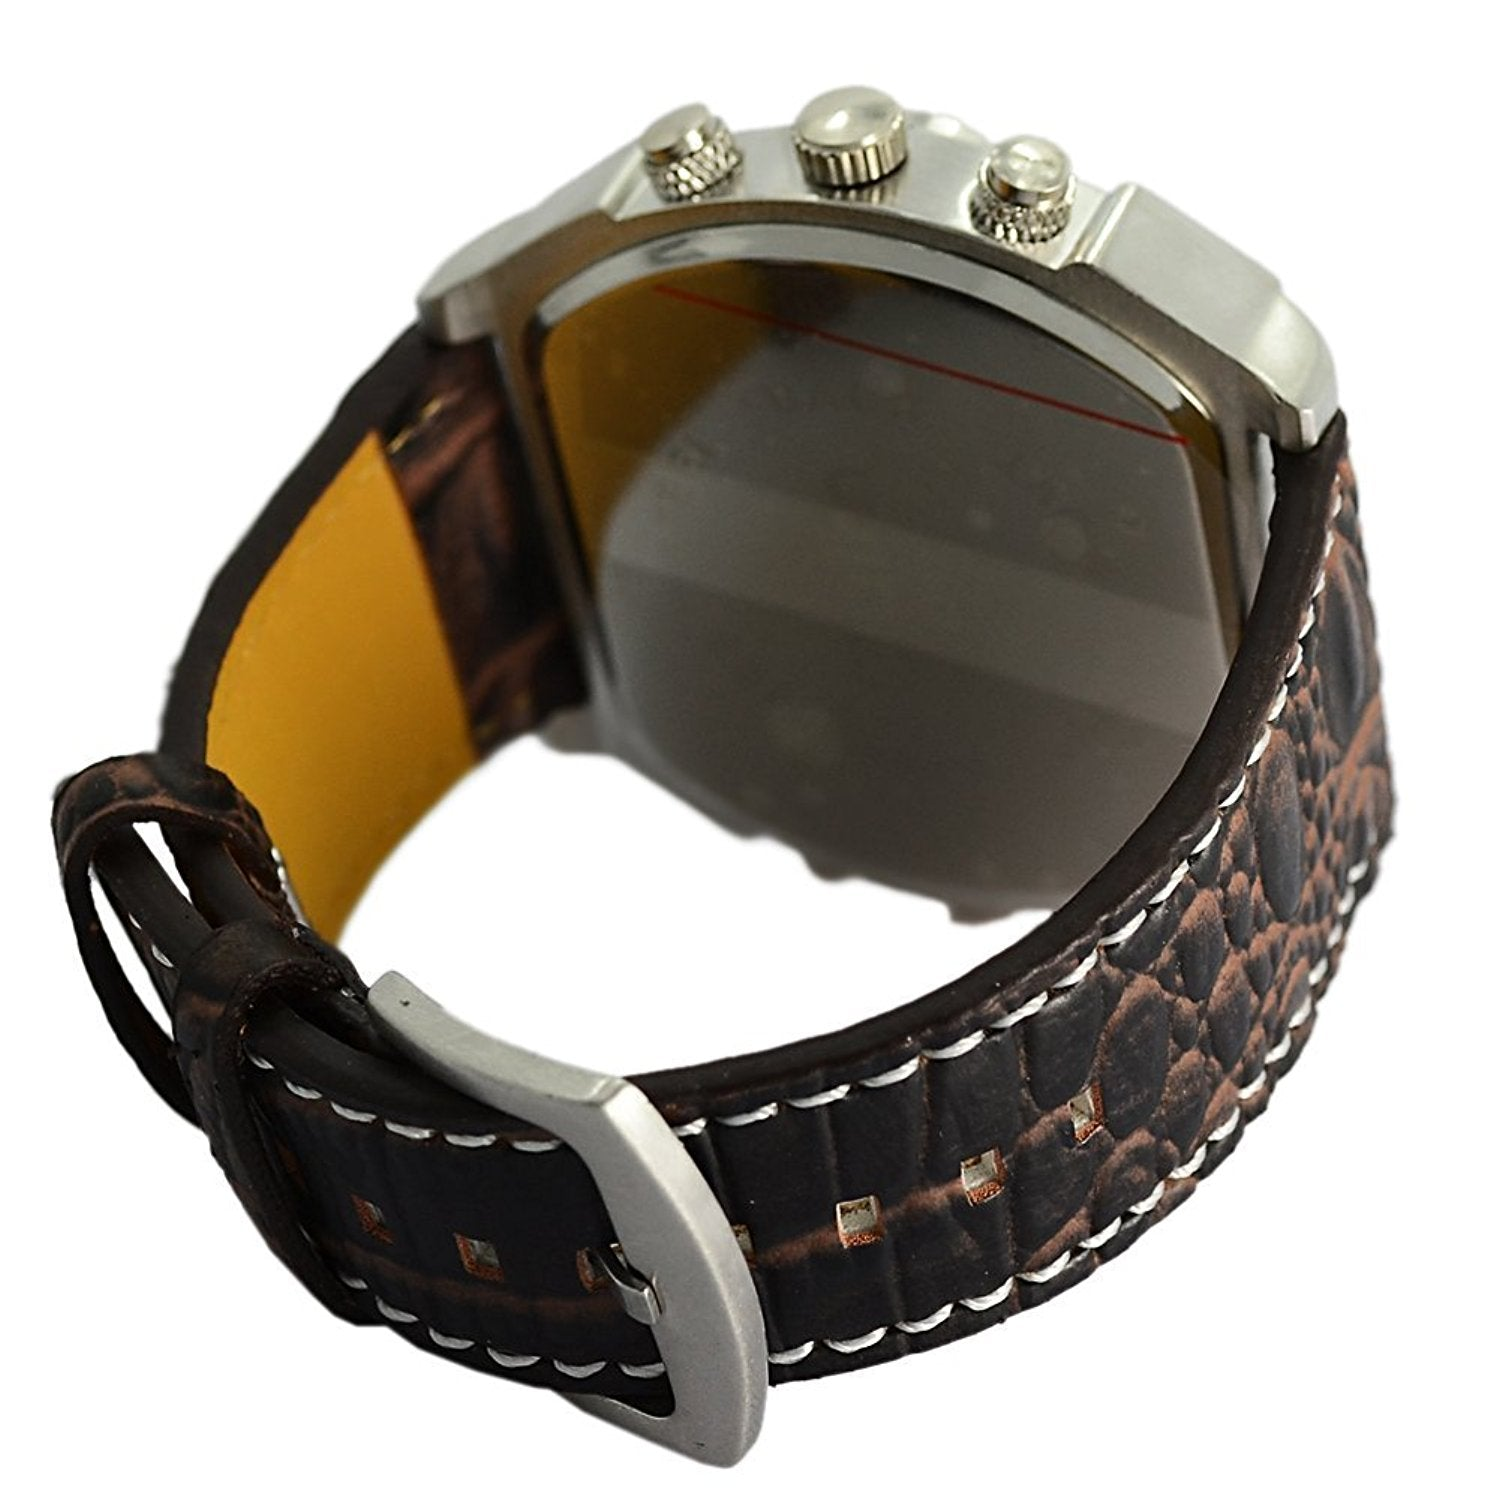 daf20d61a Quatro Gadget Watch Analog Dark Brown Leather Strap Four Sub-dials Men Watch  Compass Thermometer